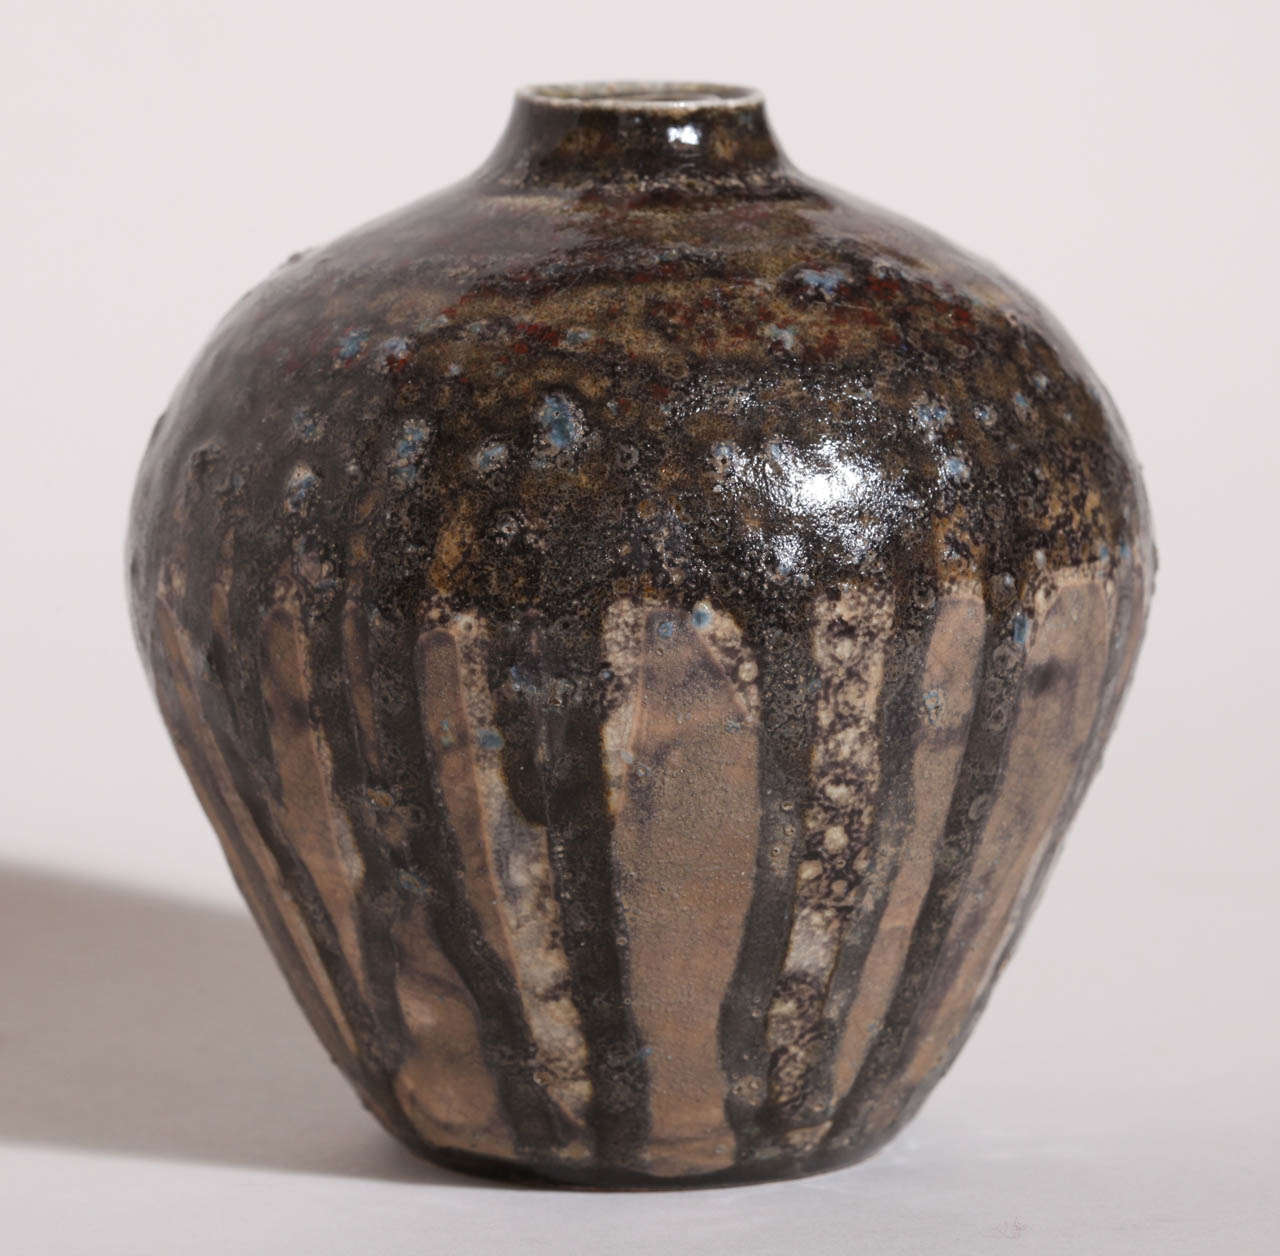 Henri Simmen French Art Deco Small Stoneware Vase For Sale 1